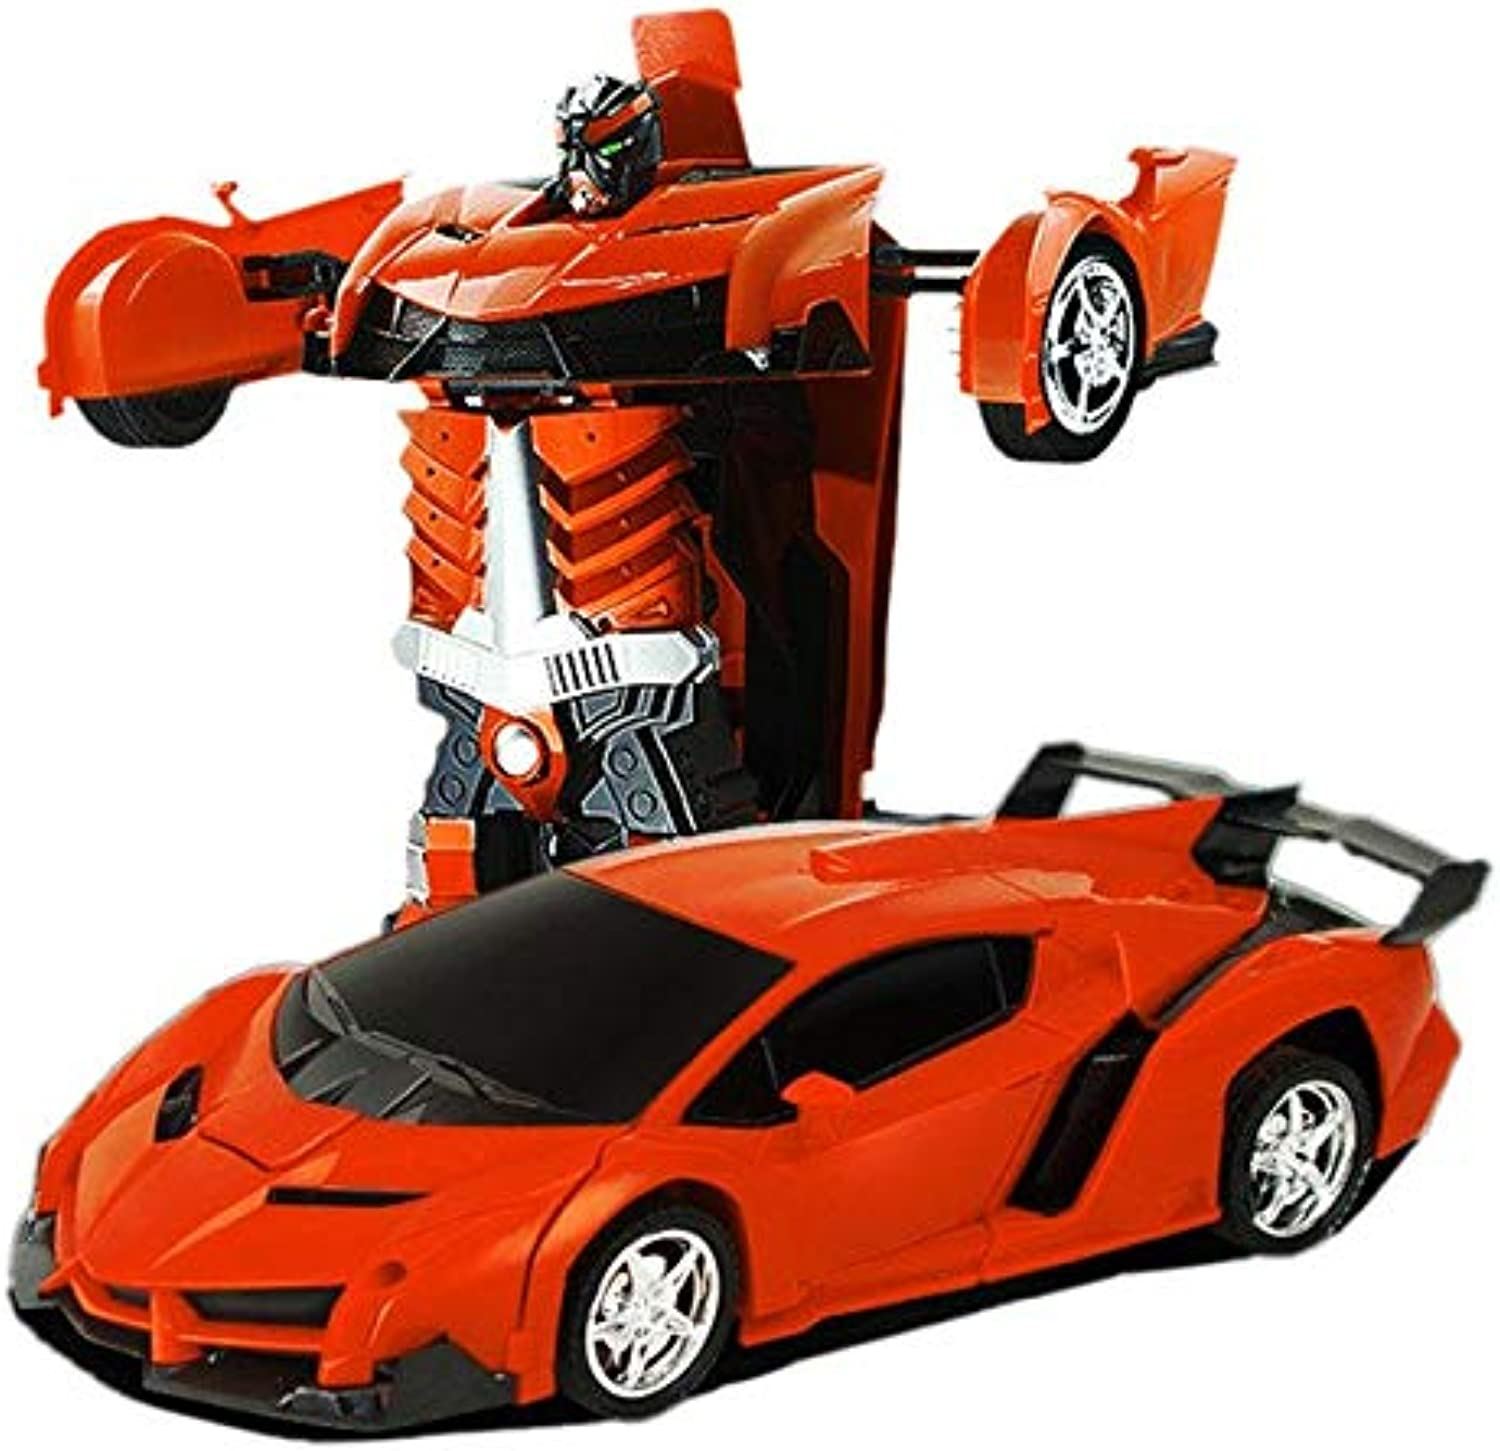 Generic Rc Car Remote Control Cars 2In1 Transformation Robots Toy Deformation Toys RC Sports Car Vehicle Model orange Car